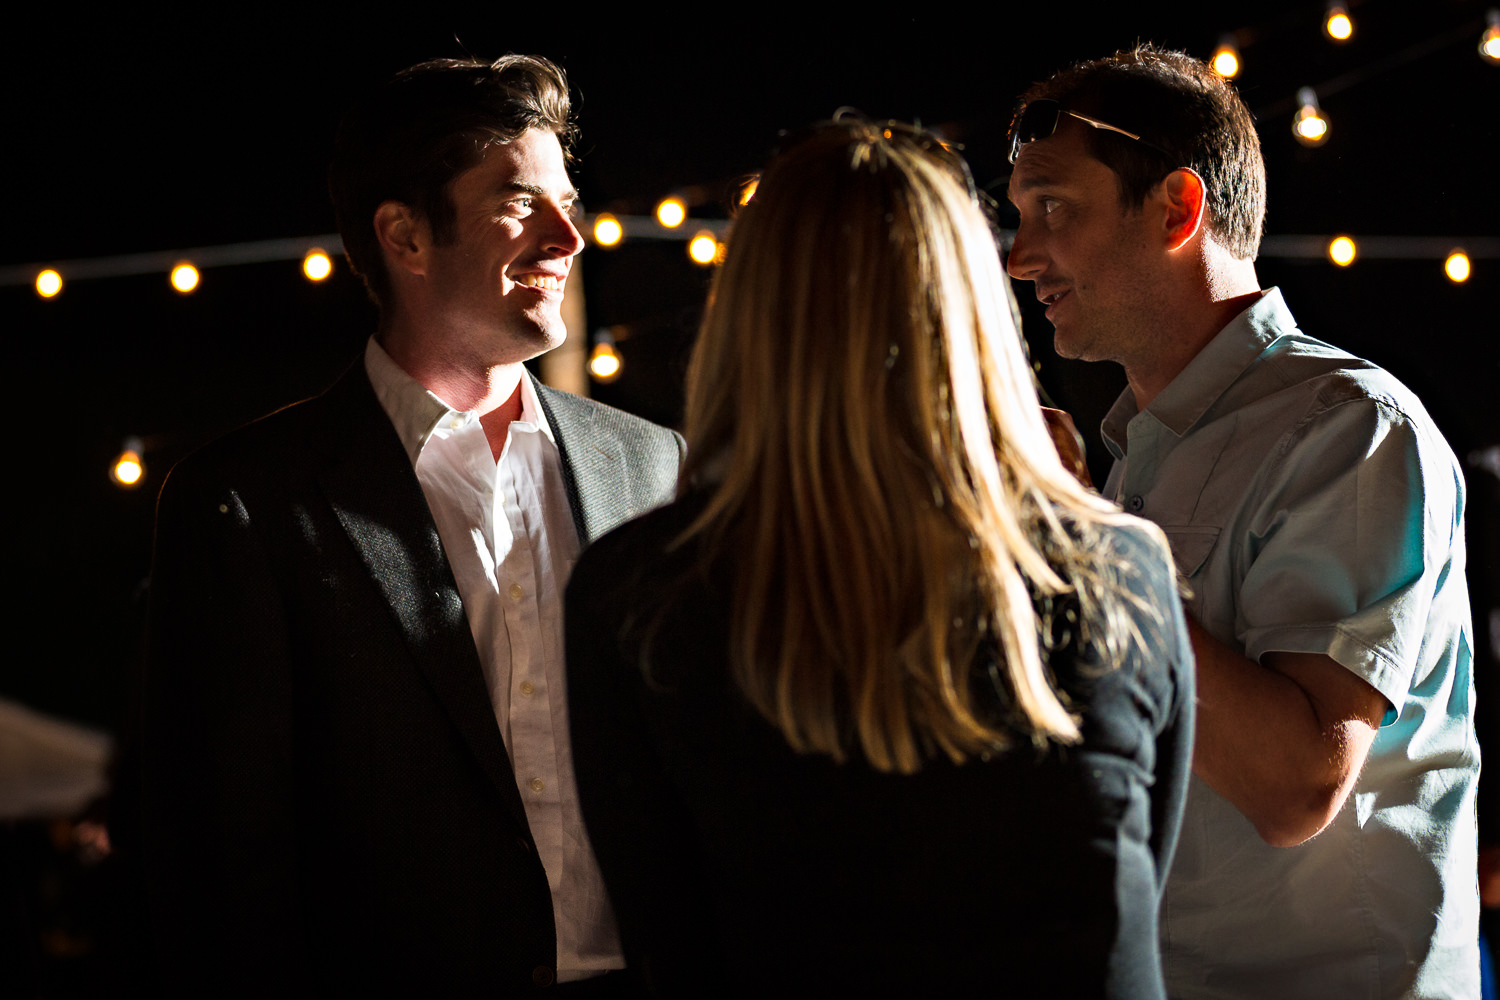 mcleod-montana-wedding-male-guests-laughing-at-reception.jpg